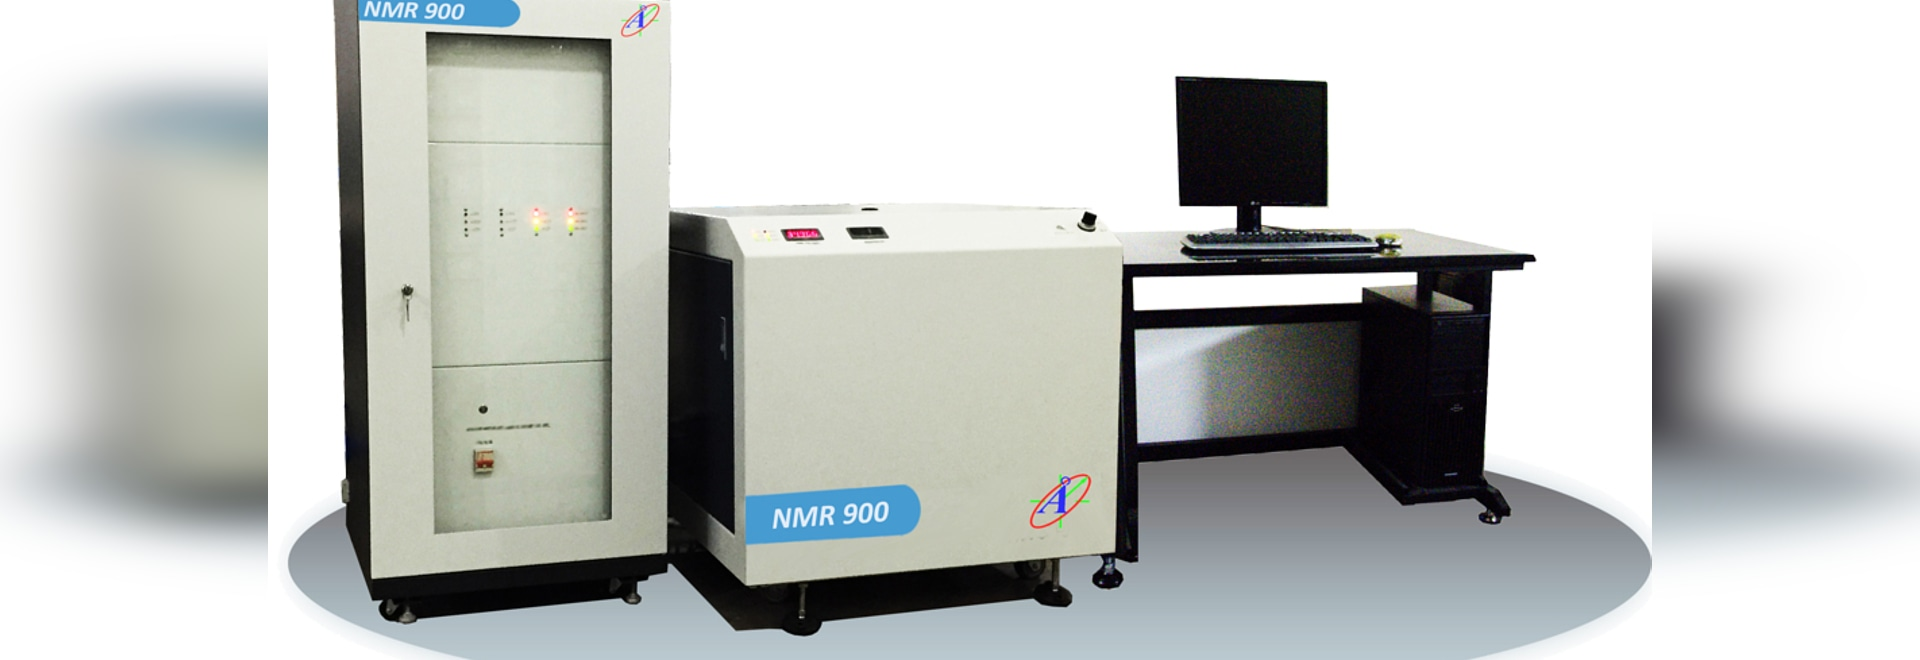 Angstrom released a new model of NMR-900 Nuclear Magnetic Resonance